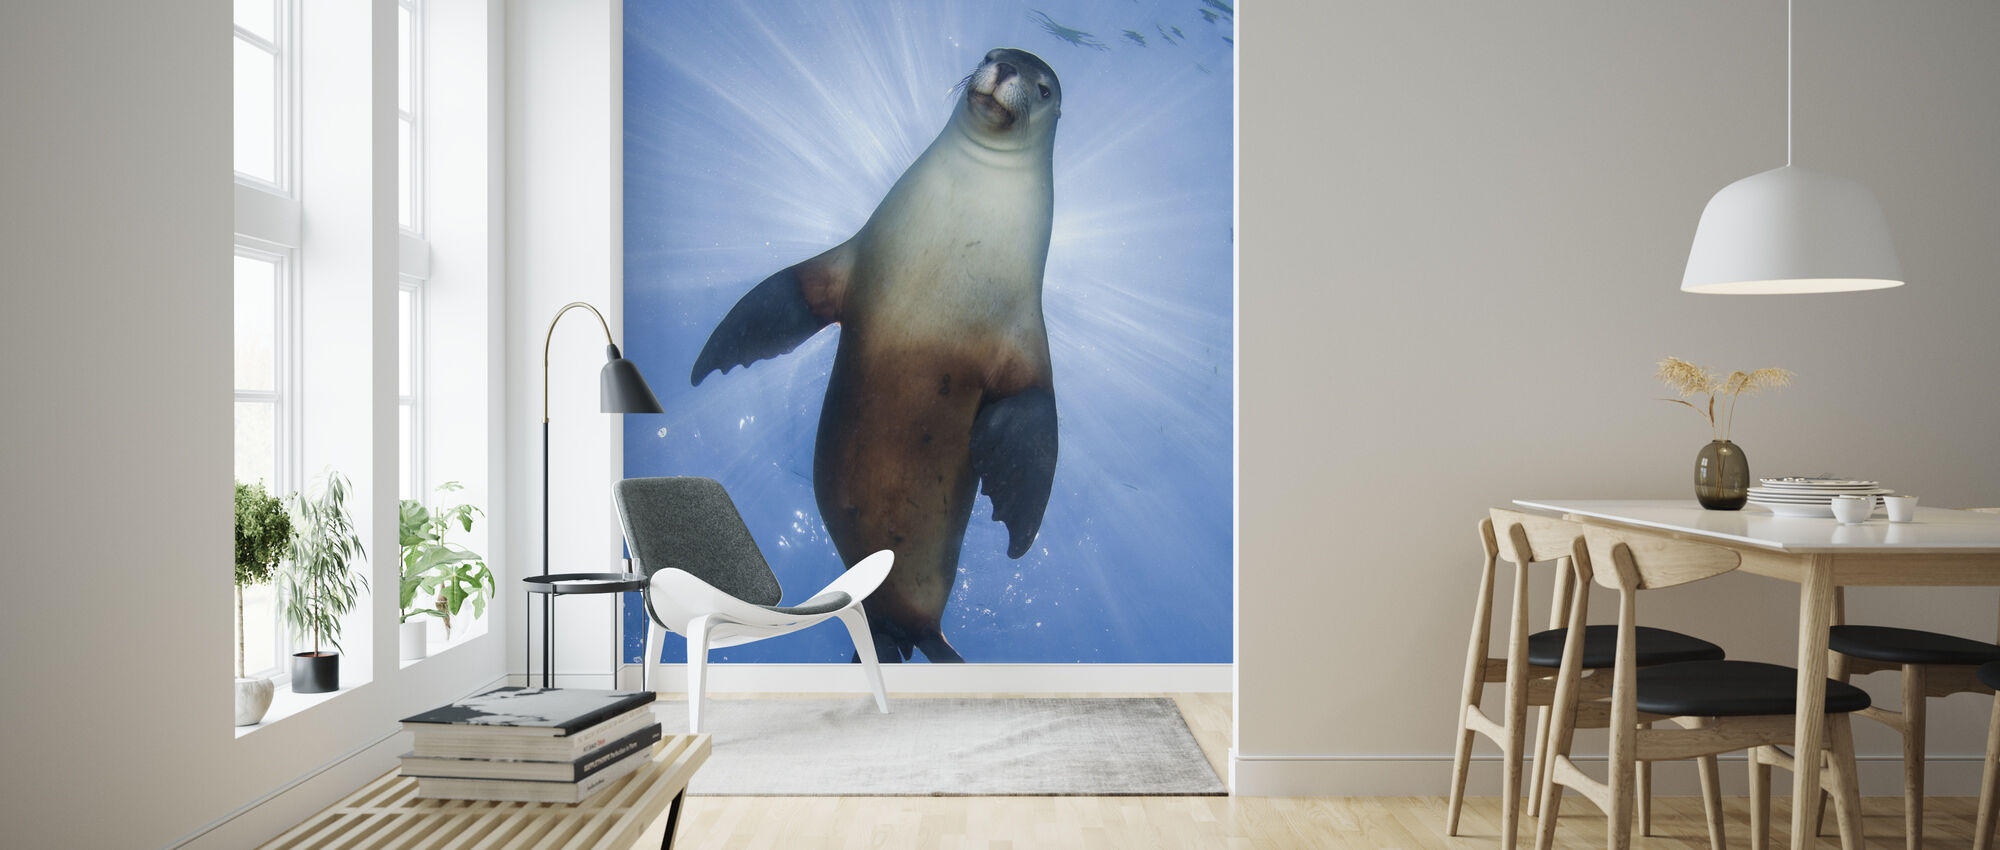 Australian Sea Lion - Wallpaper - Living Room